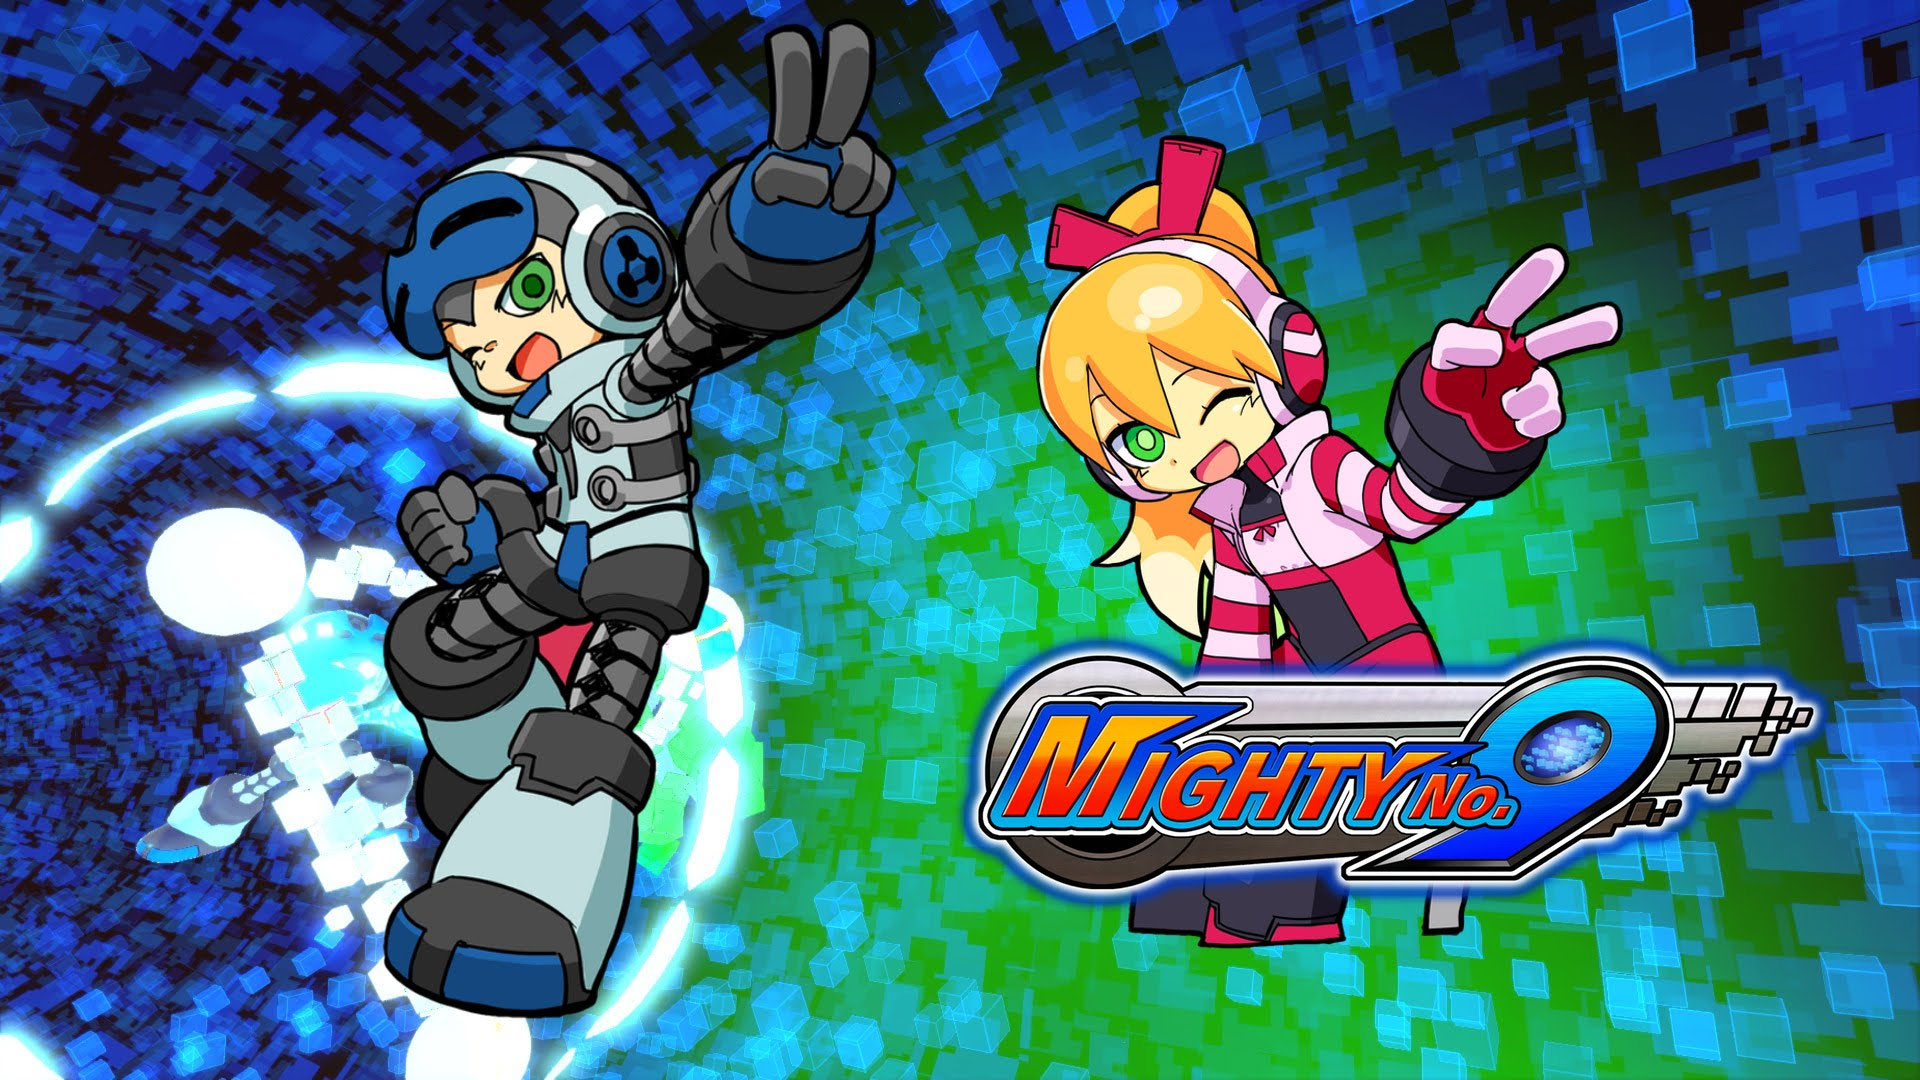 Mighty No 9 Wallpapers in Ultra HD 4K 1920x1080